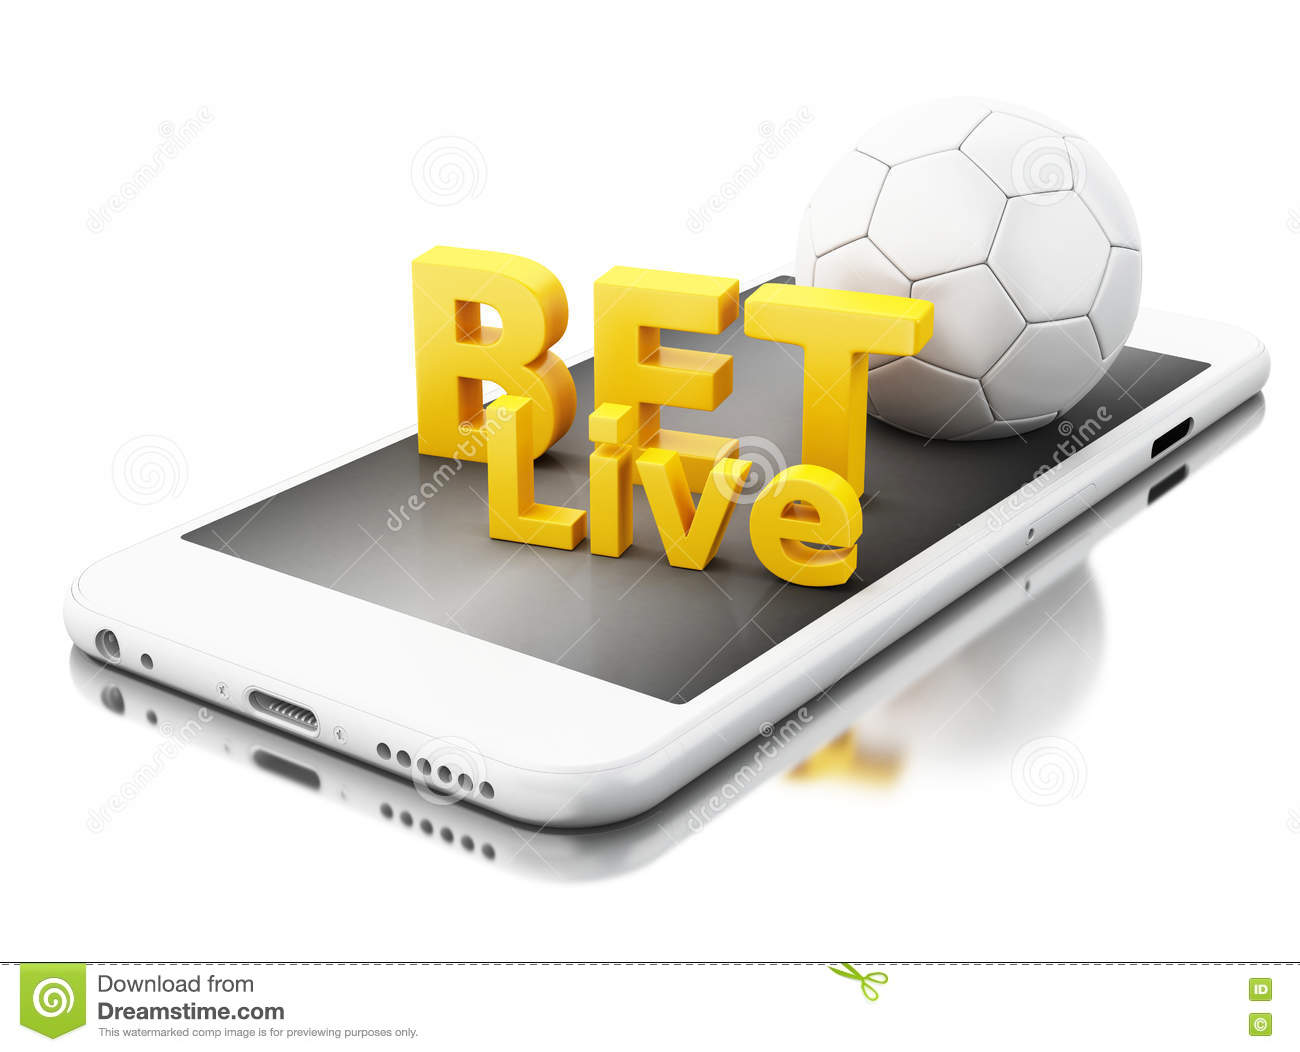 How to Bet Online in India in Rupees?